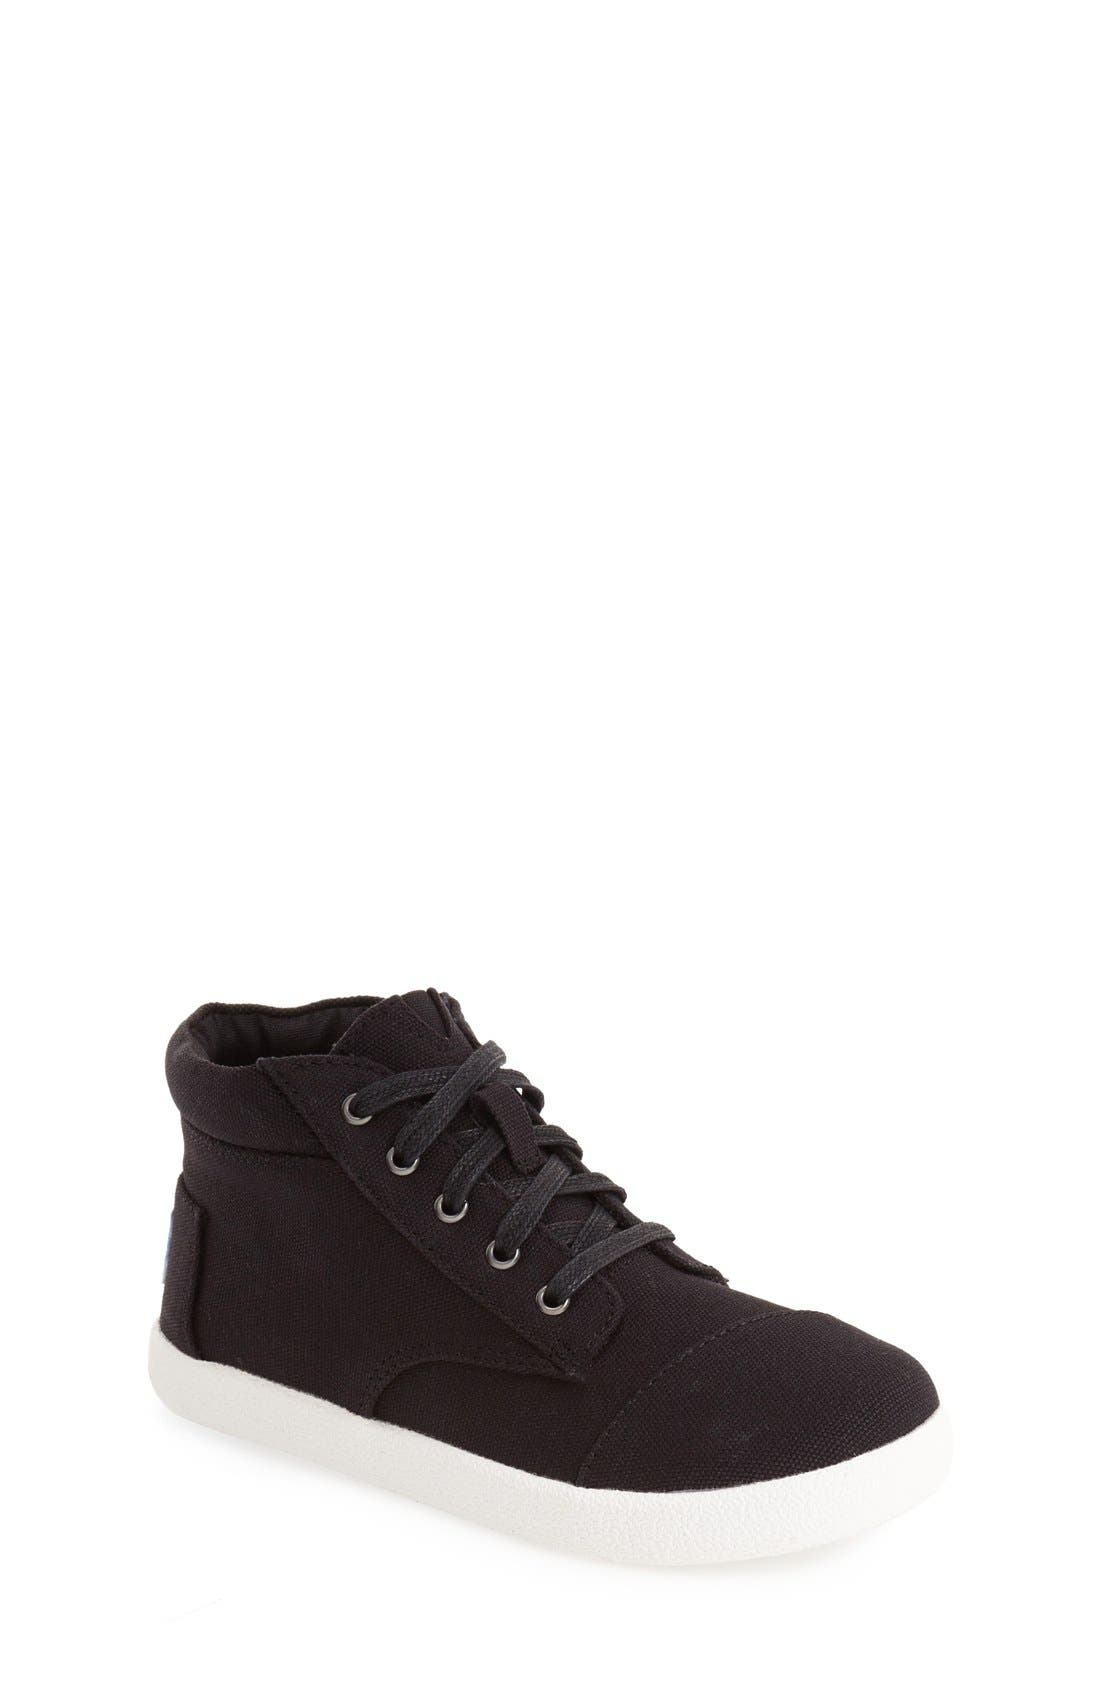 'Paseo' High Top Sneaker,                             Main thumbnail 1, color,                             Black